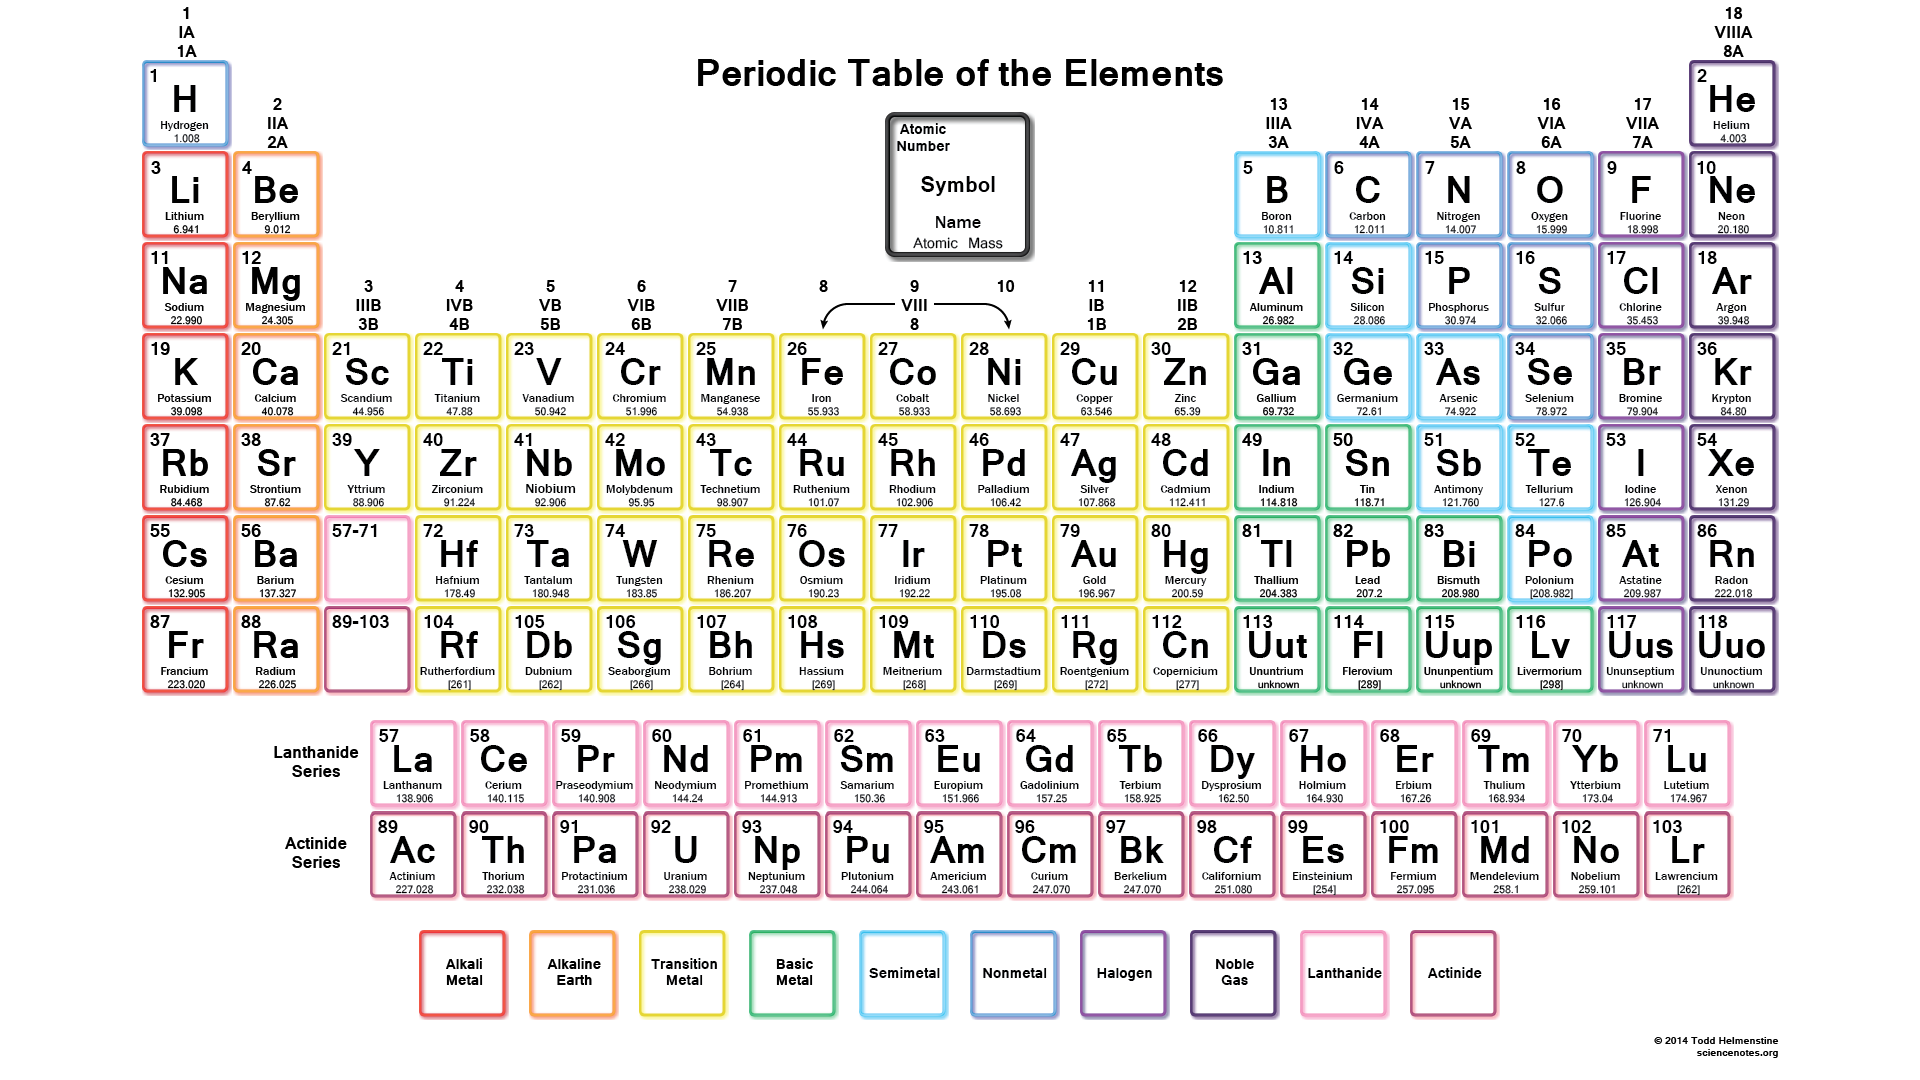 Printable periodic table of elements google search cora printable periodic table of elements google search gamestrikefo Image collections